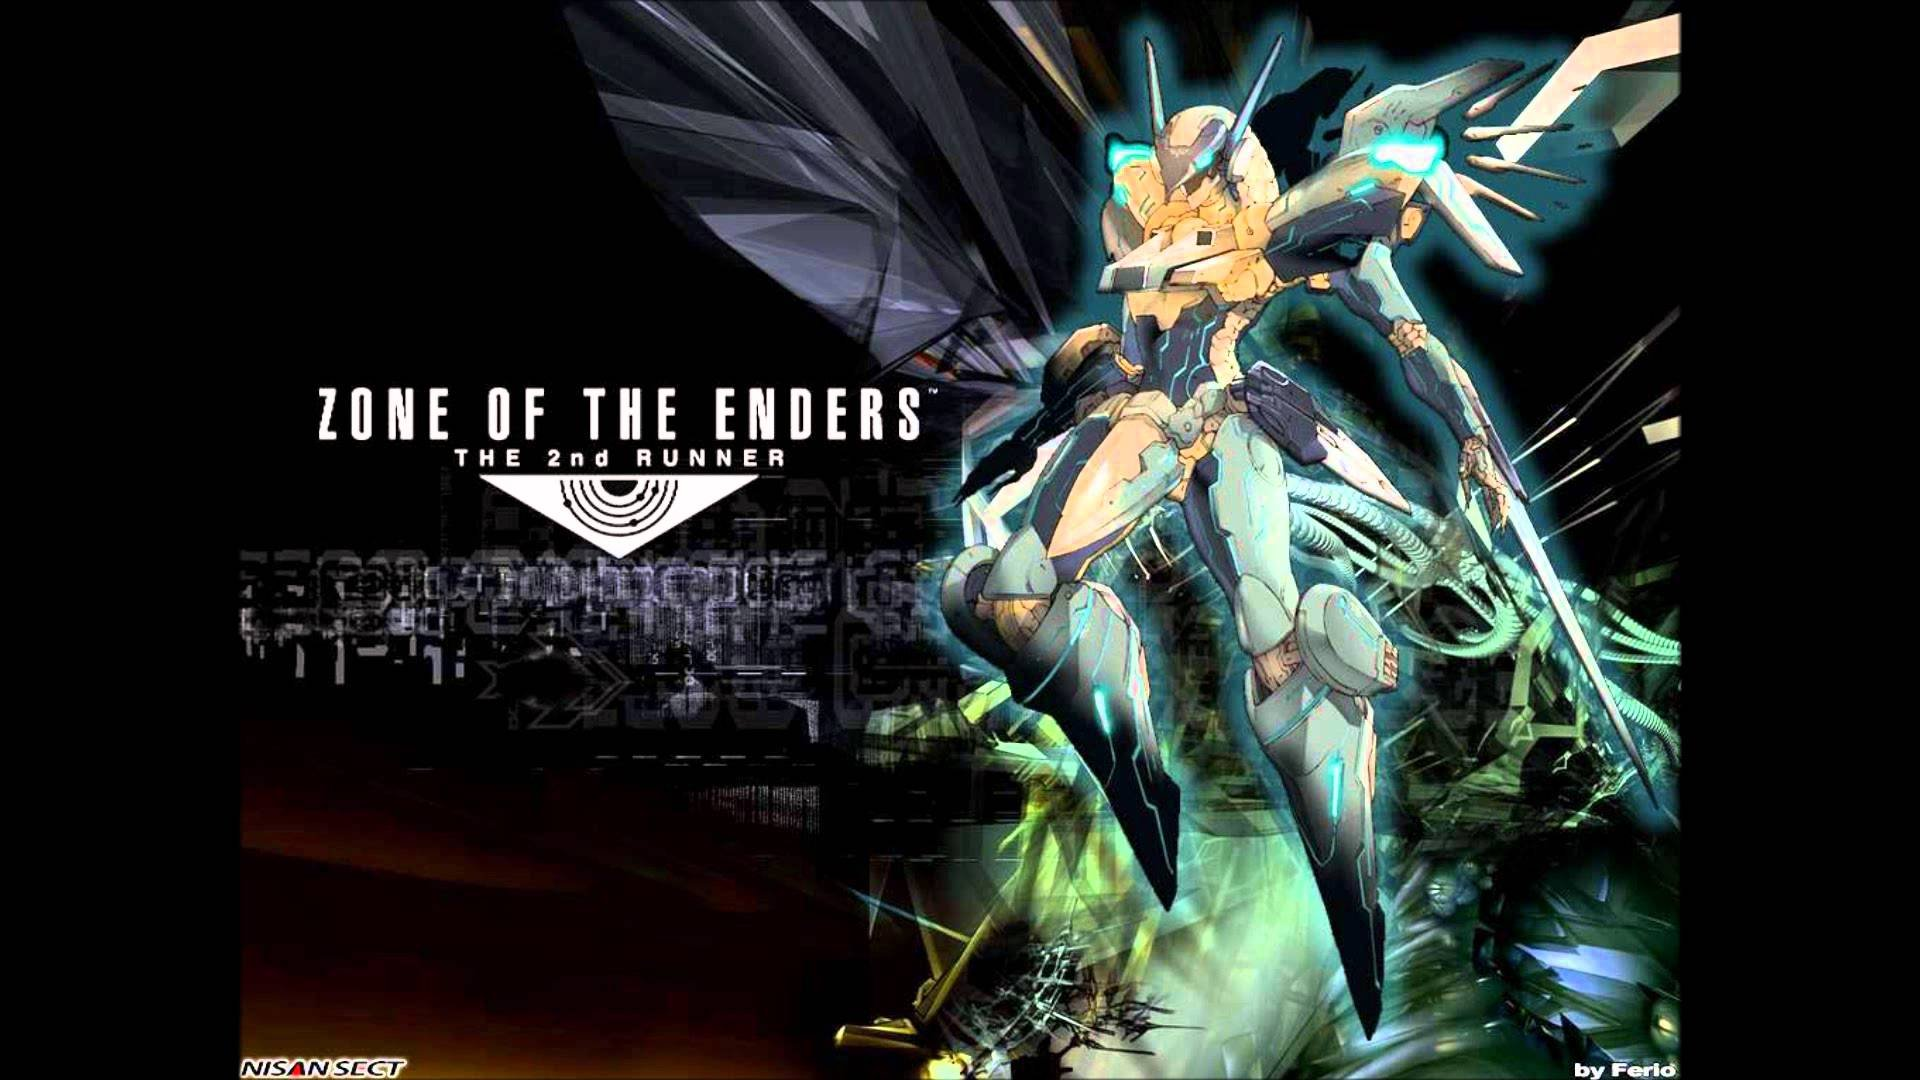 Hd wallpaper zone - Zone Of The Enders Zoe Sci Fi Action Mecha Fighting Wallpaper 1920x1080 555828 Wallpaperup